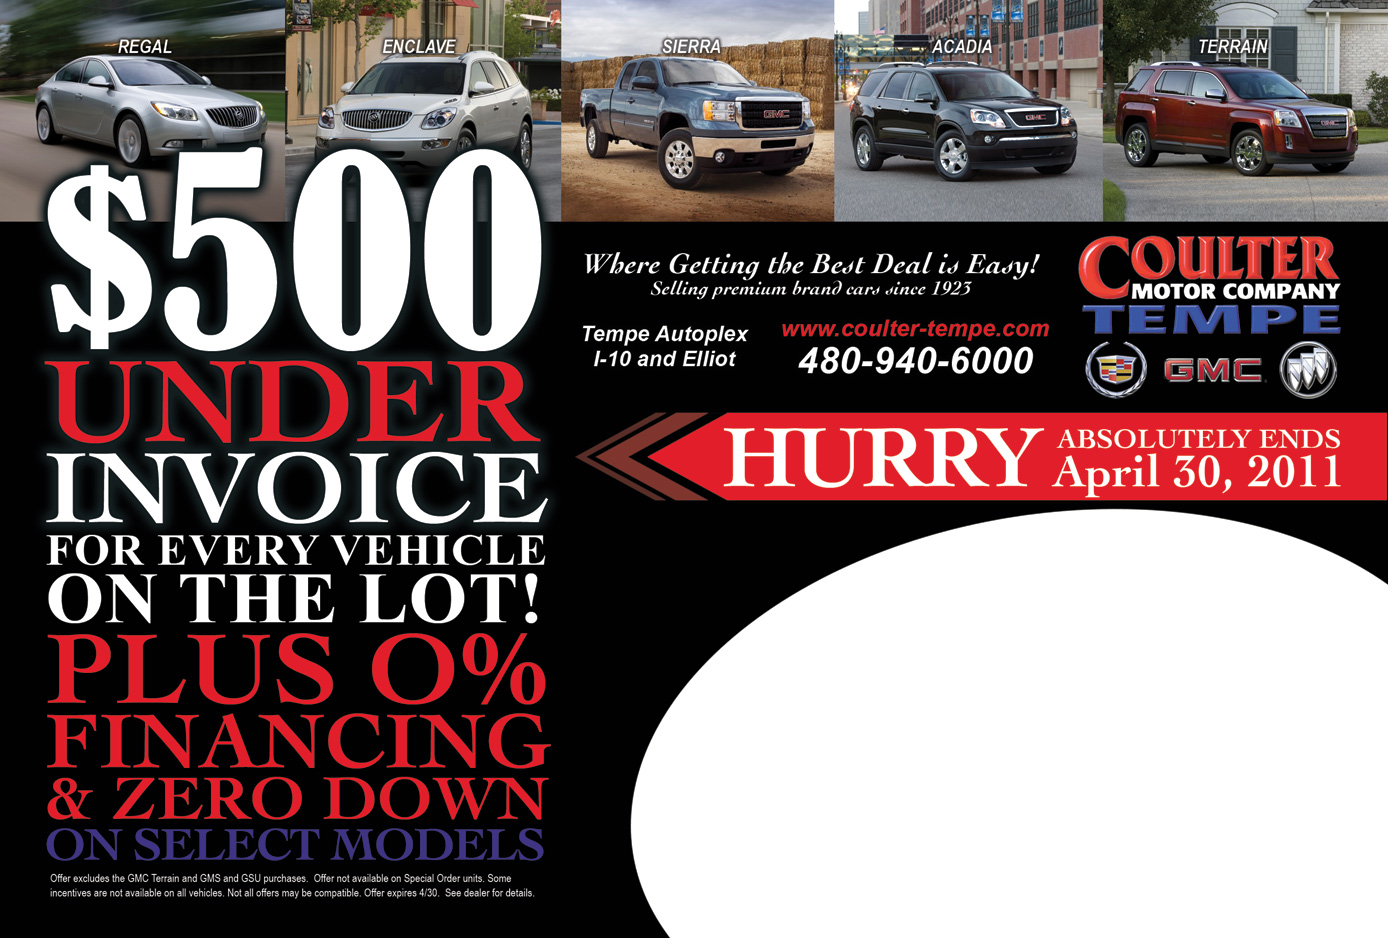 Tempe gmc truck dealer coulter motor company for Coulter motor company tempe